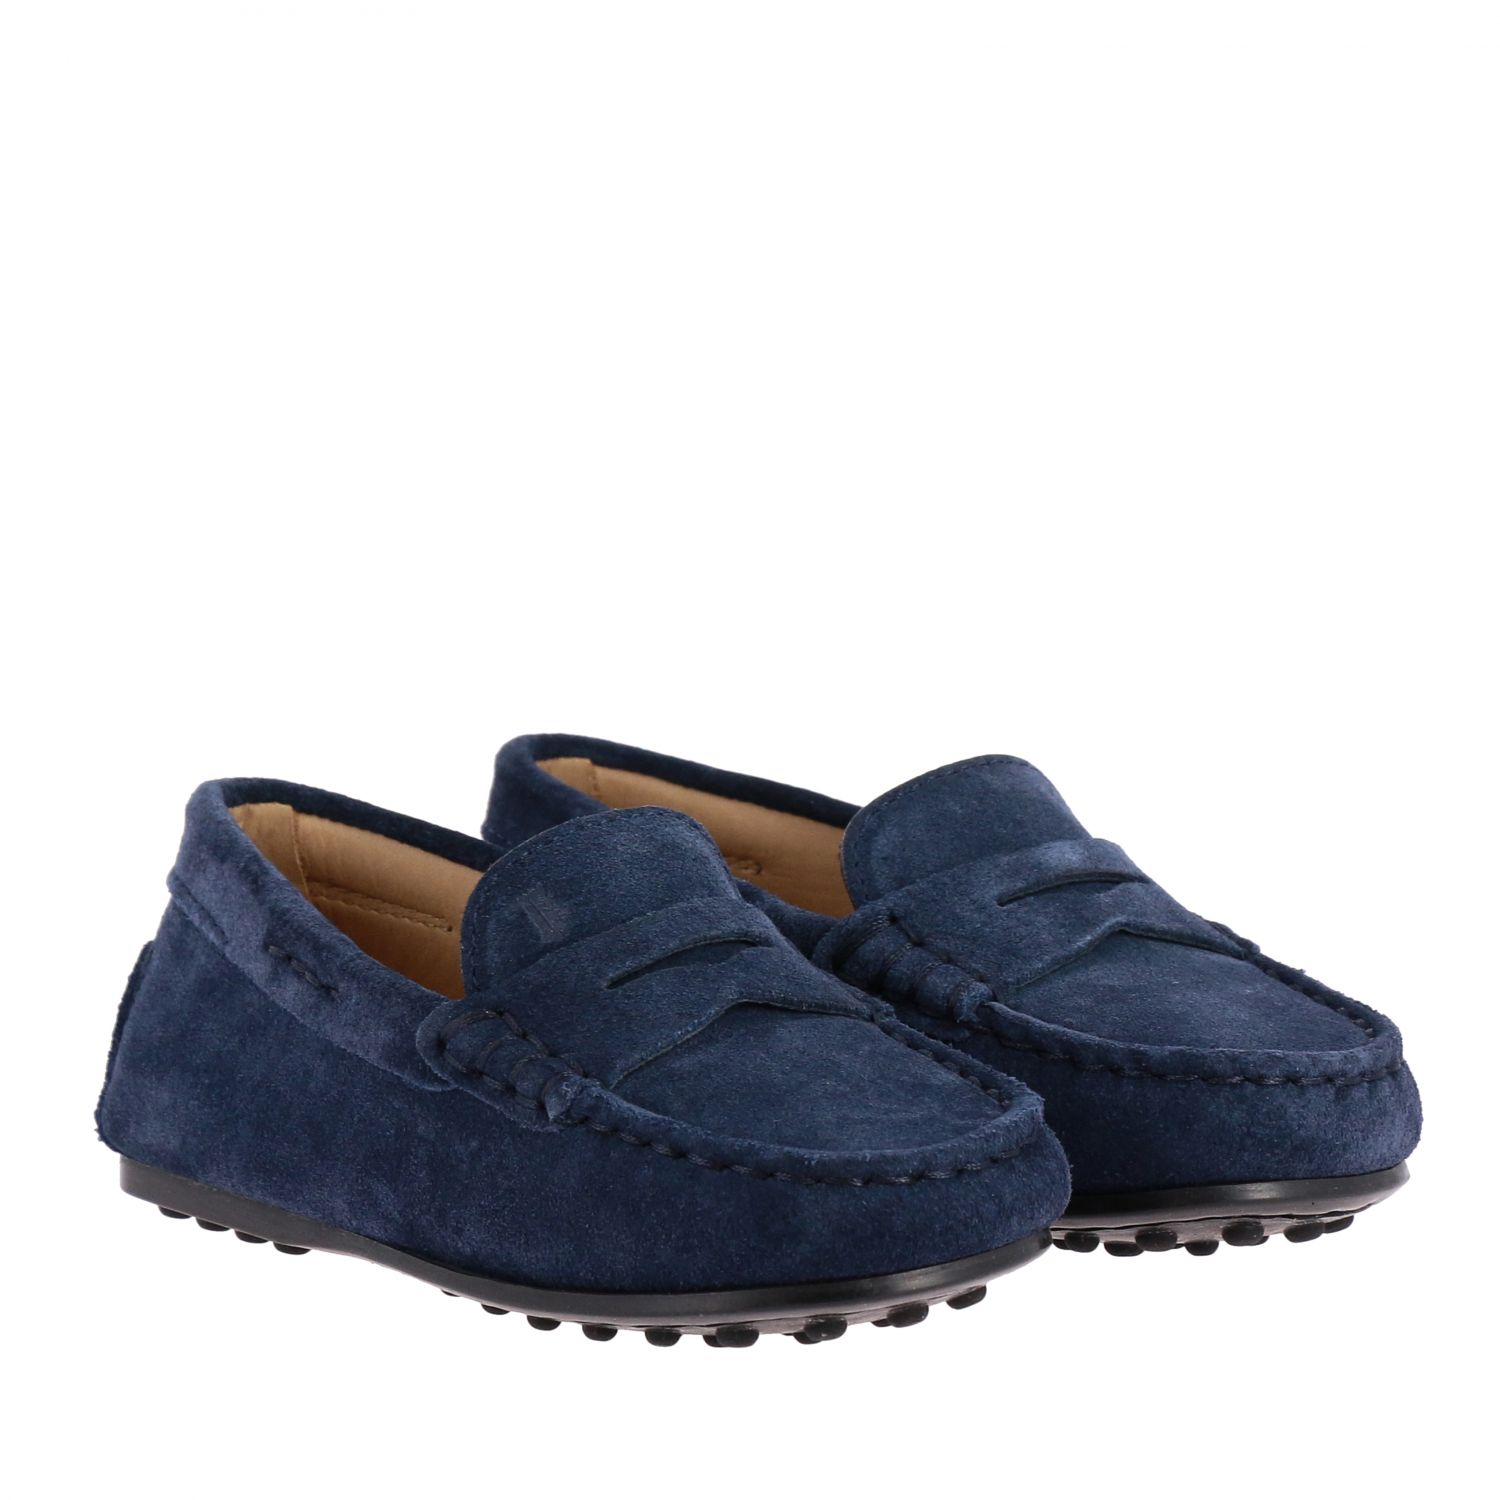 Shoes kids Tod's navy 2